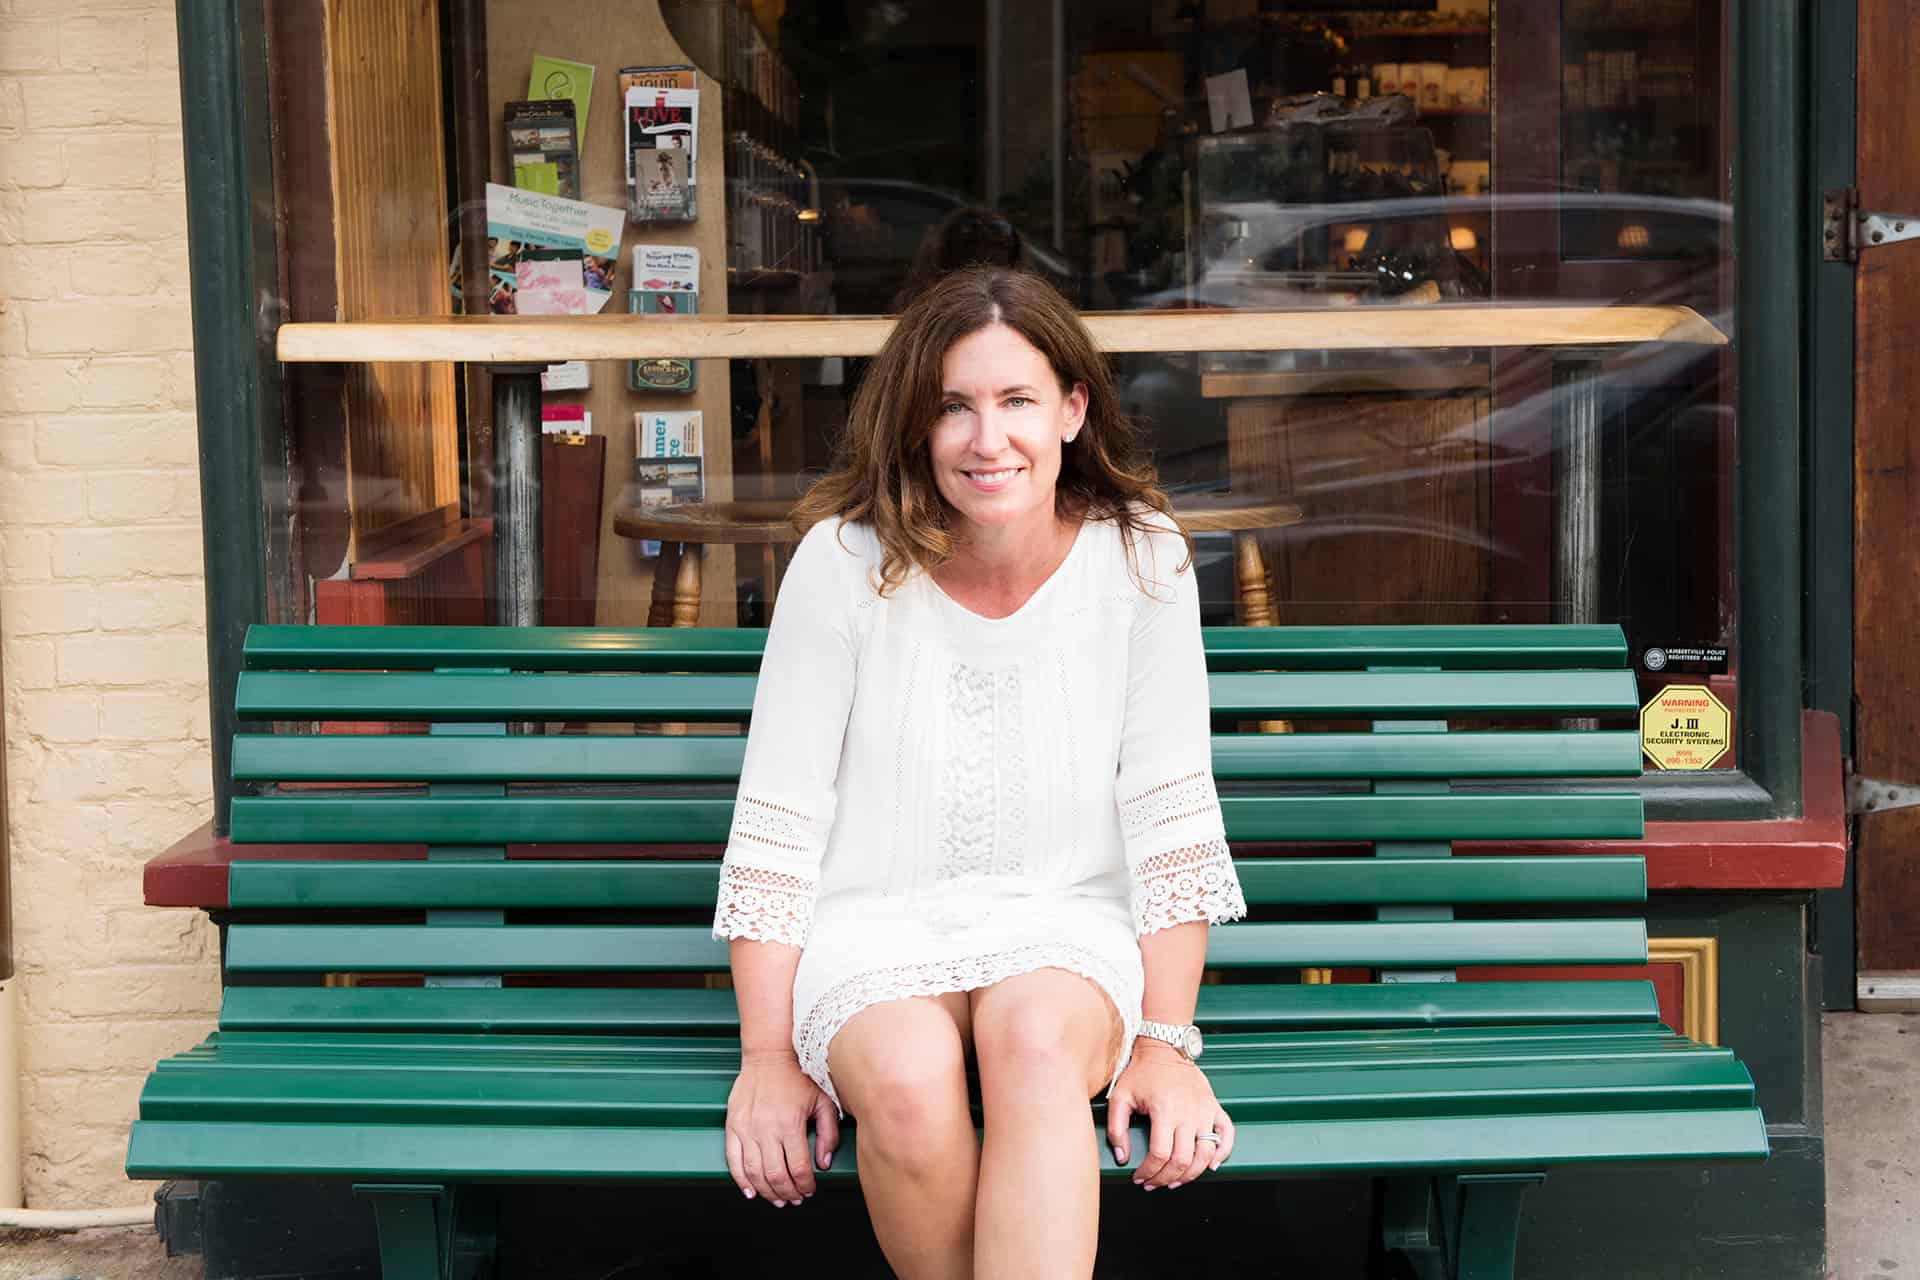 Kathy Marcino sitting on a green bench